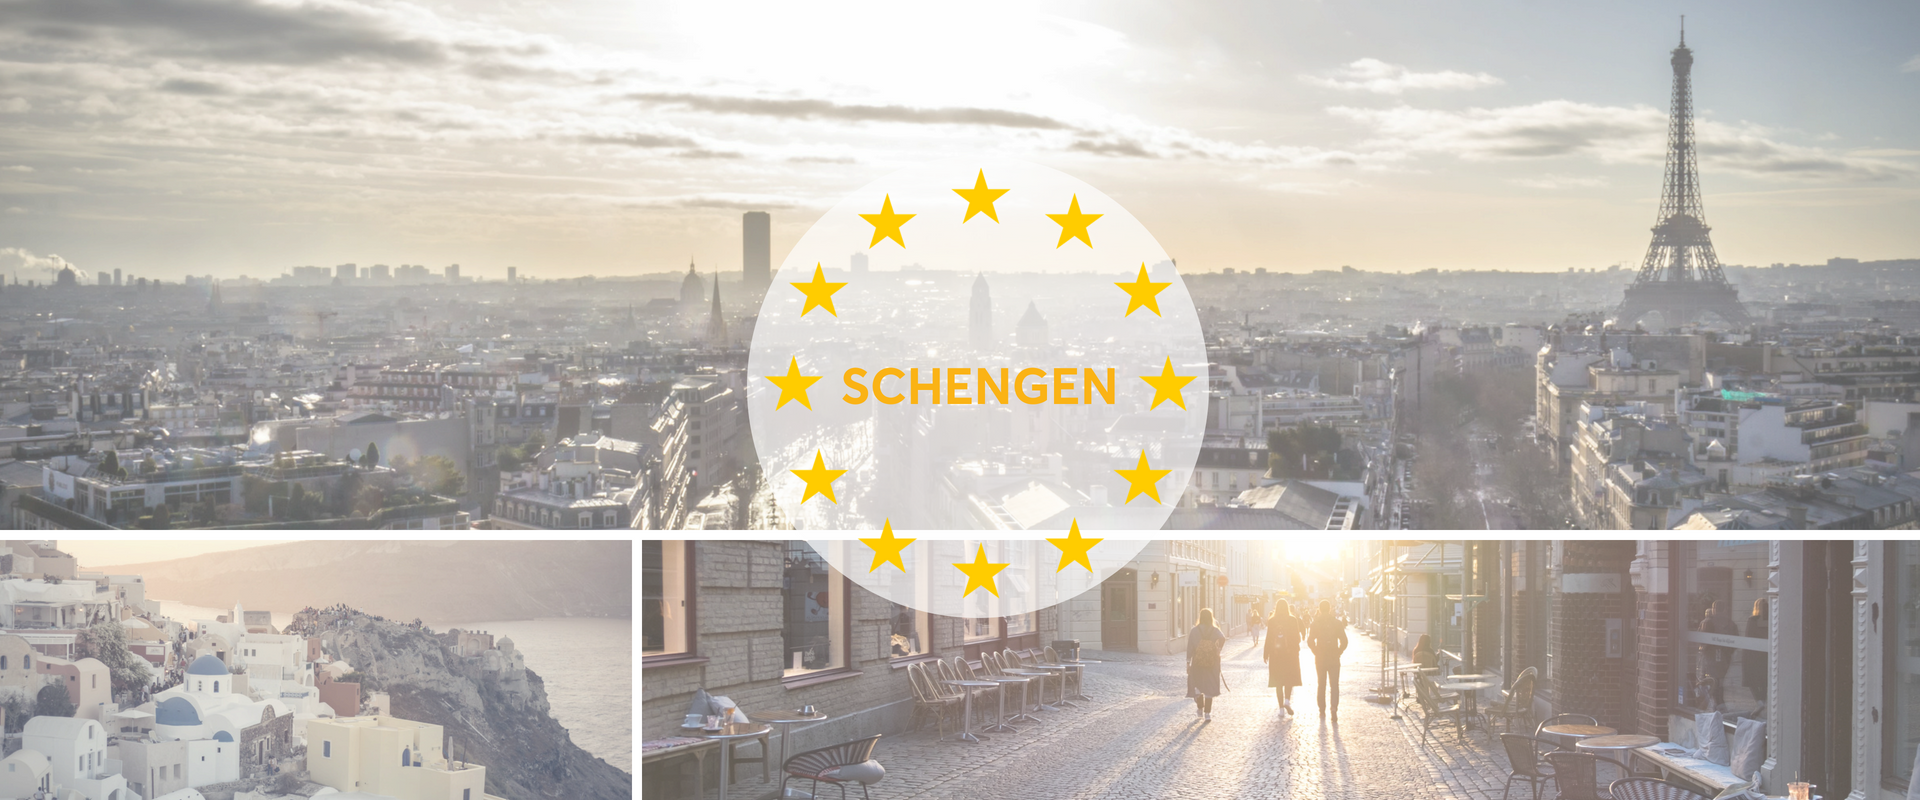 Luma Offer Travel Insurance for Schengen Visas